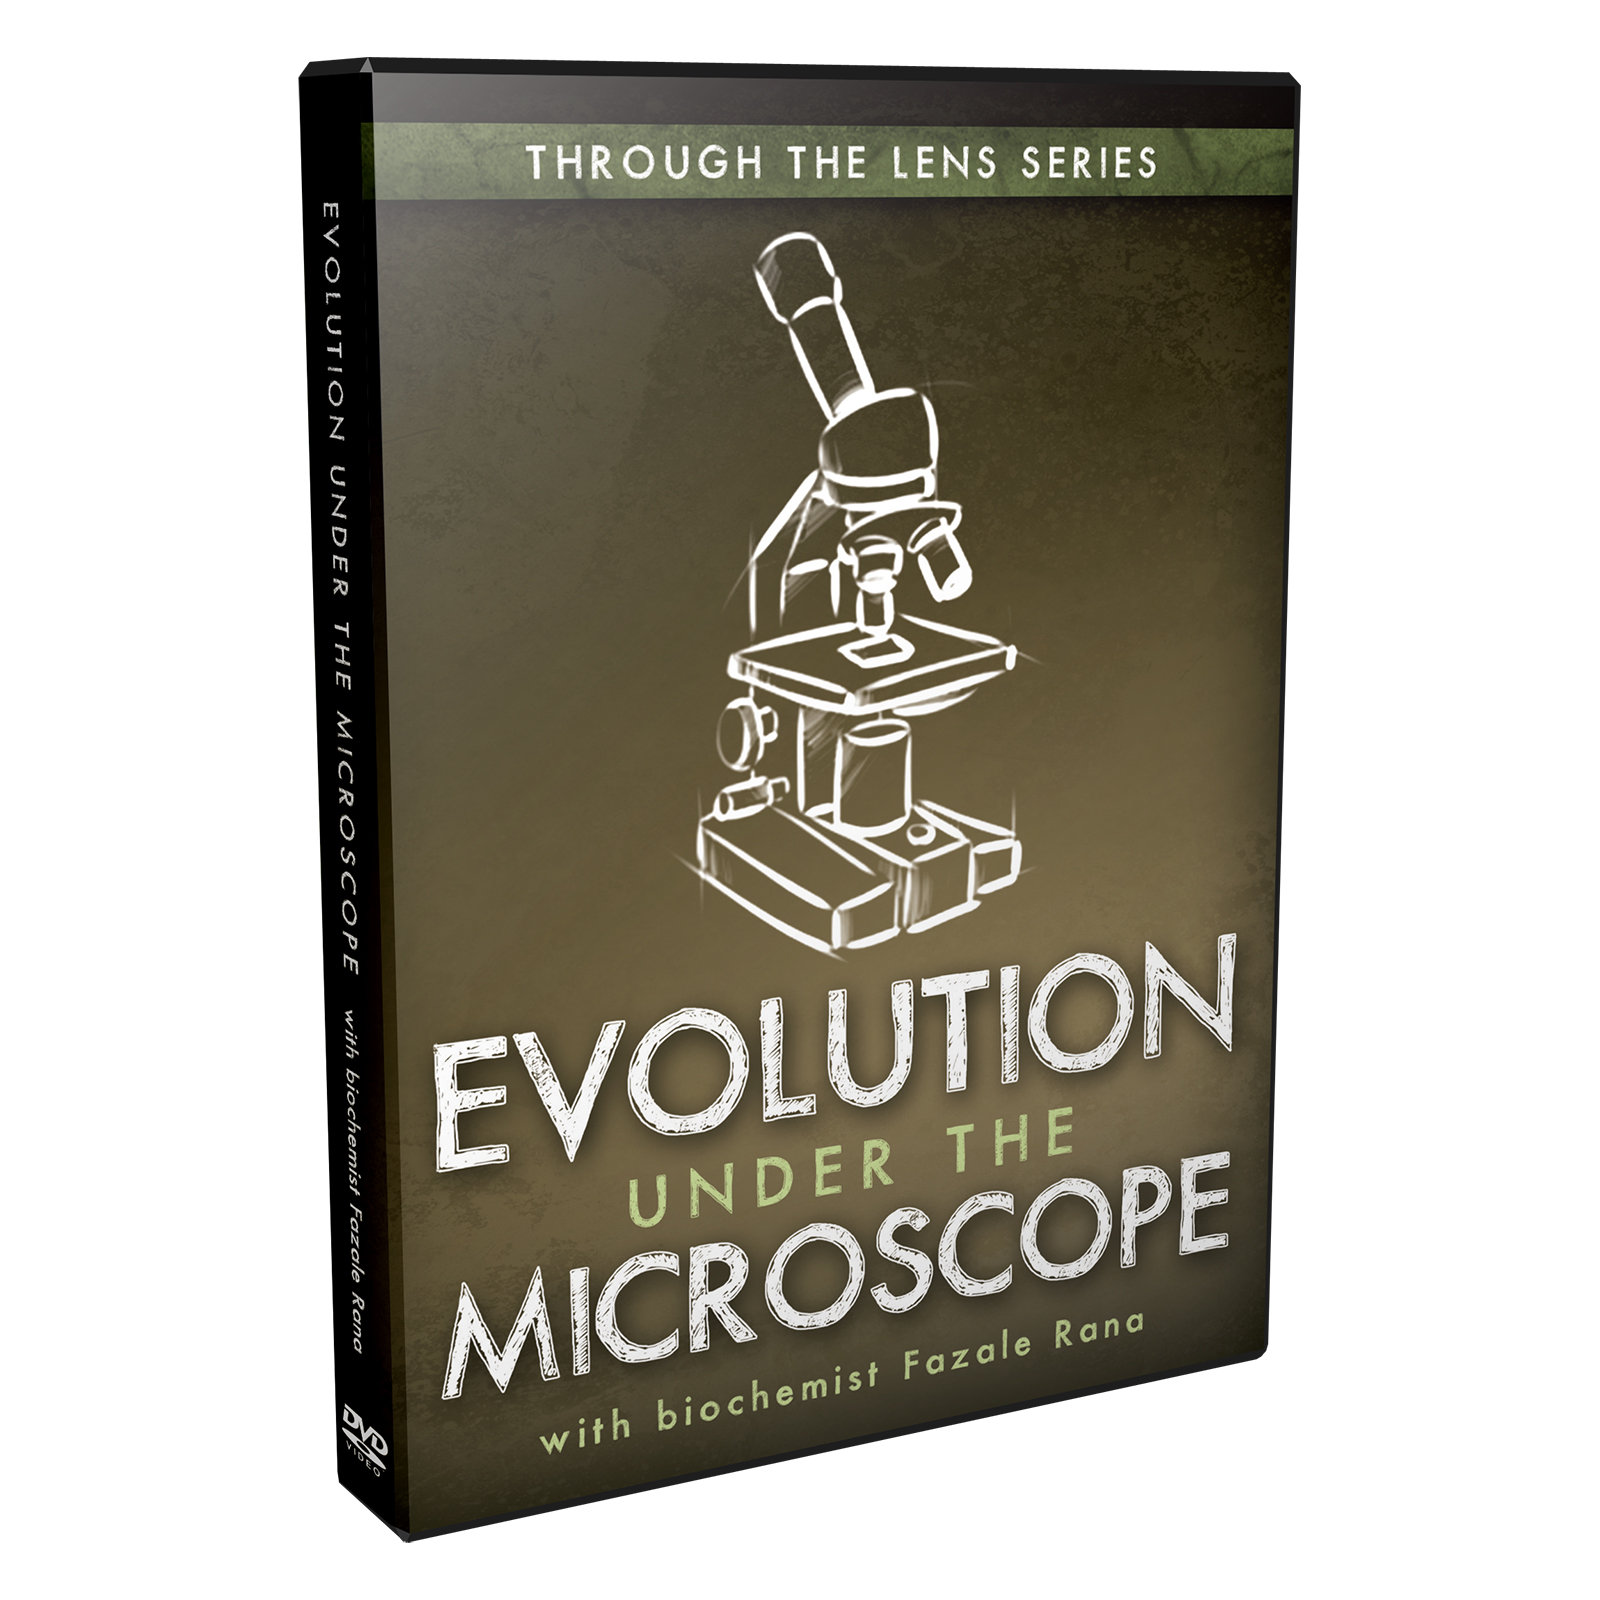 Evolution under the Microscope Image